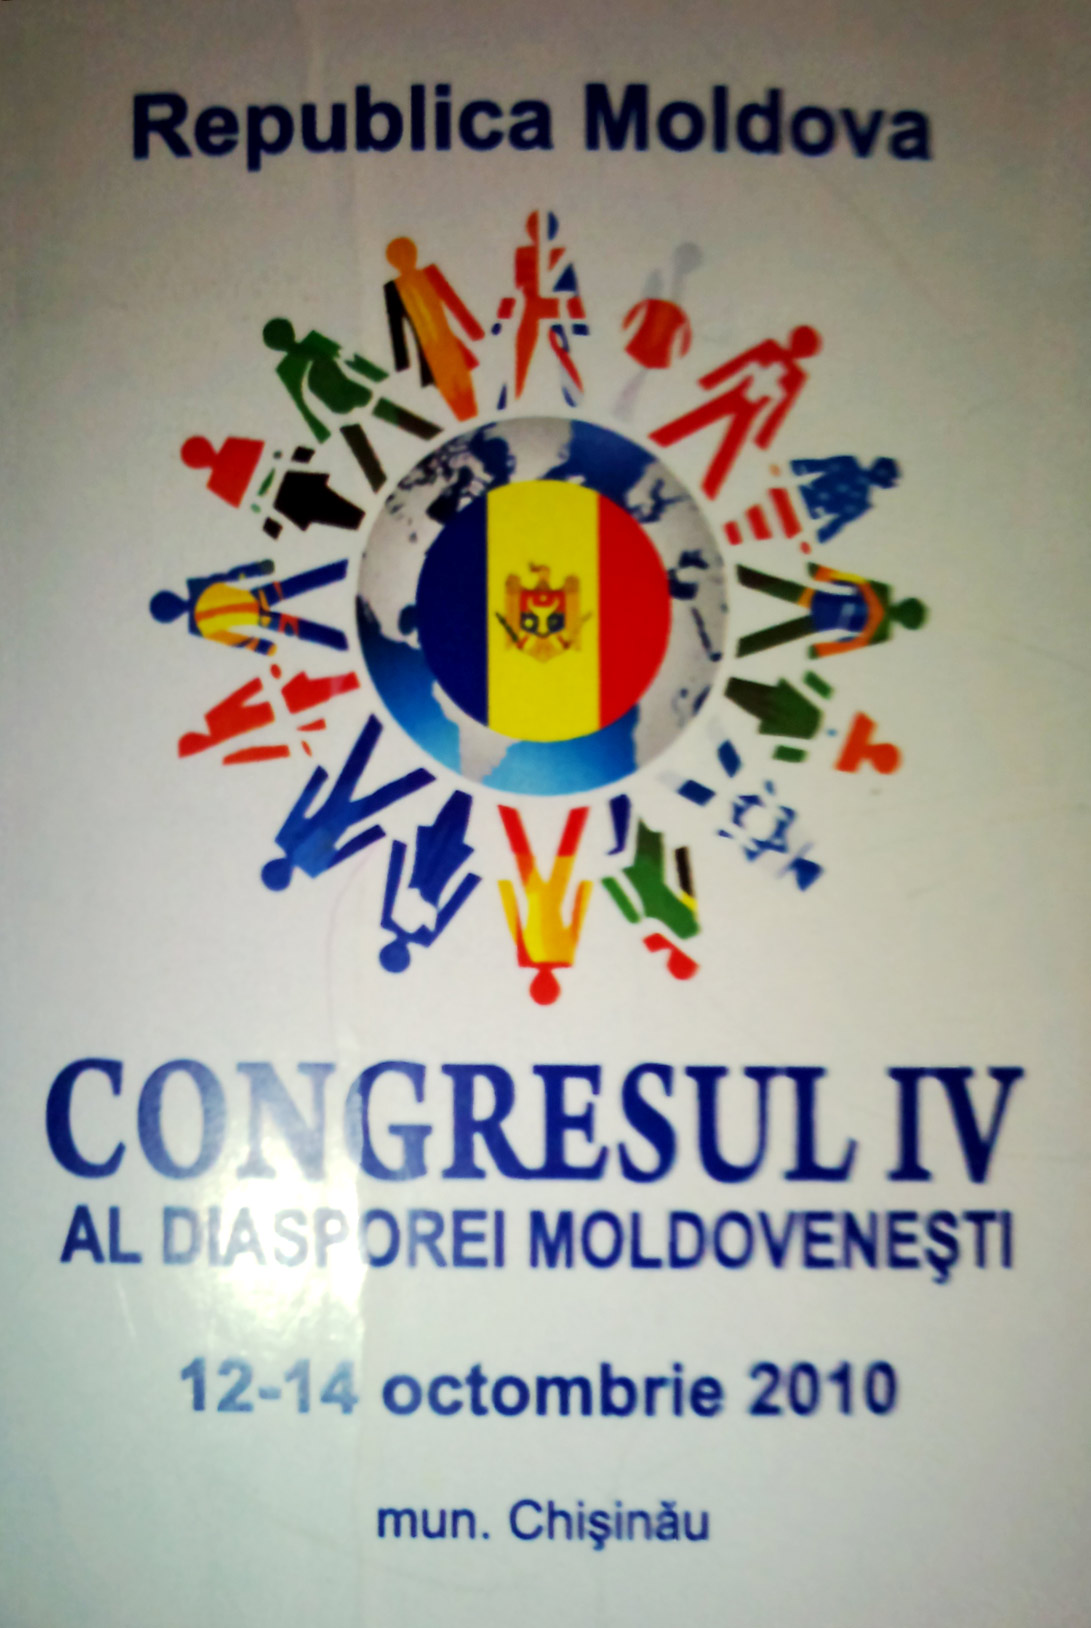 Congresul Diasporei (photo by Violeta Gritcan)